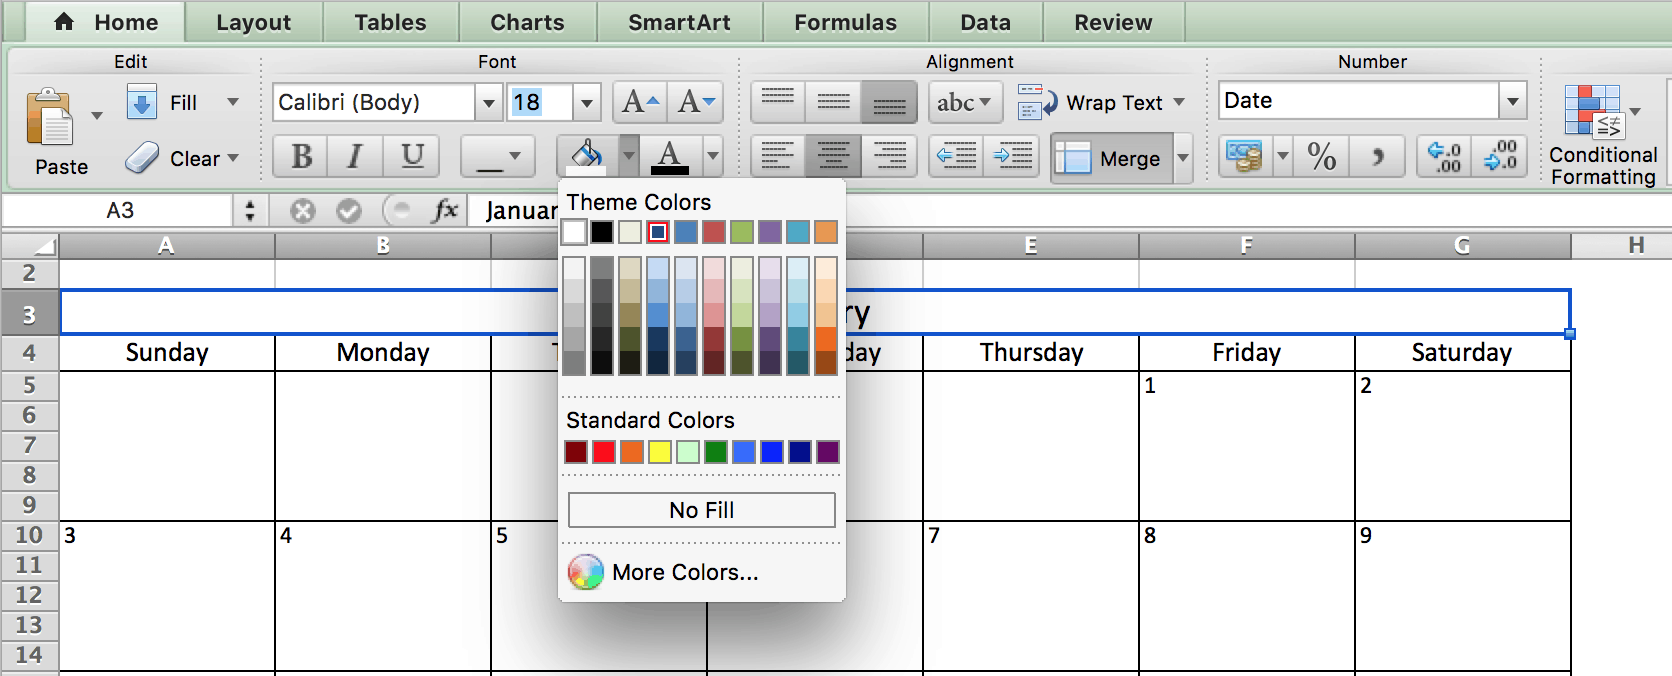 Ediblewildsus  Stunning Make A  Calendar In Excel Includes Free Template With Remarkable Choosing Colors  Calendar In Excel With Nice Excel Rank Also How To Reverse Order In Excel In Addition Excel Sum If And How To Copy Cells In Excel As Well As What Is R Squared In Excel Additionally How To Add A Drop Down In Excel From Smartsheetcom With Ediblewildsus  Remarkable Make A  Calendar In Excel Includes Free Template With Nice Choosing Colors  Calendar In Excel And Stunning Excel Rank Also How To Reverse Order In Excel In Addition Excel Sum If From Smartsheetcom